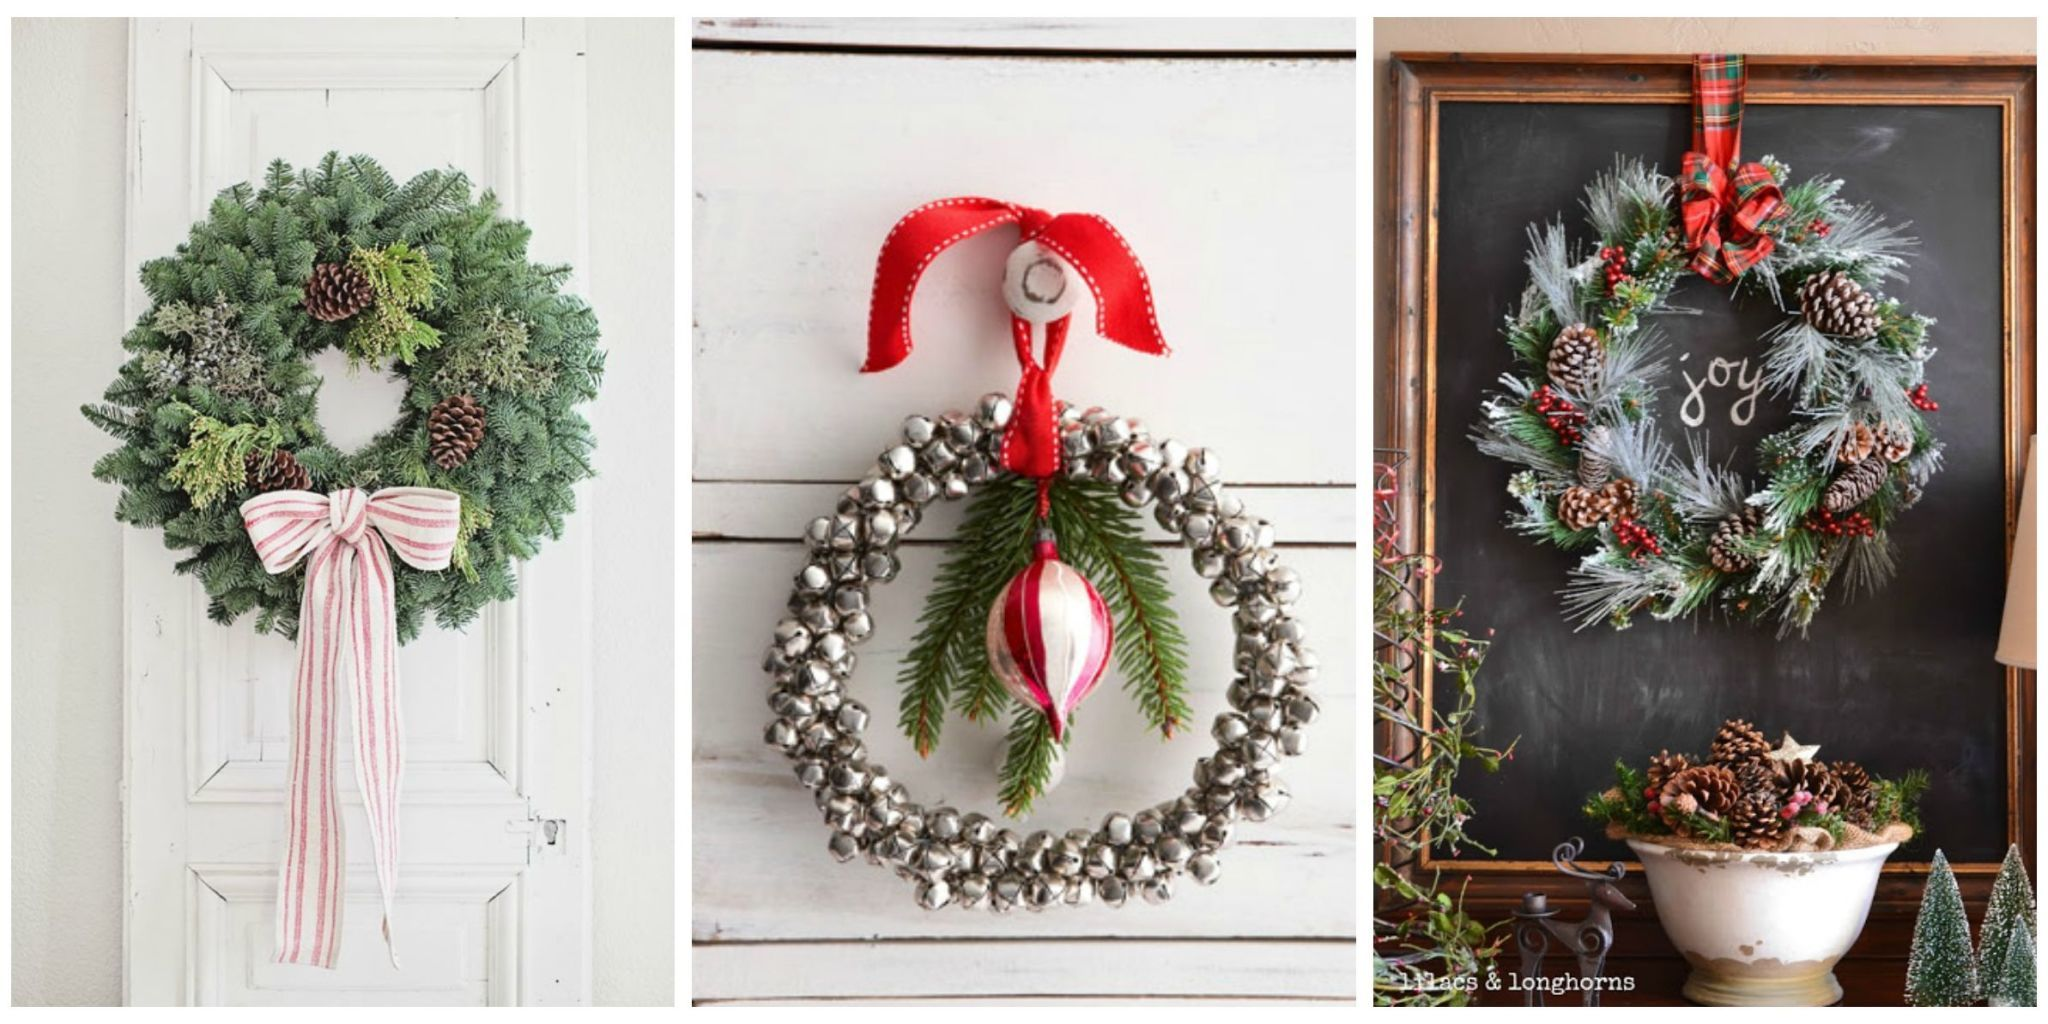 diy holiday wreaths & 40+ DIY Christmas Wreath Ideas - How To Make a Homemade Holiday ...